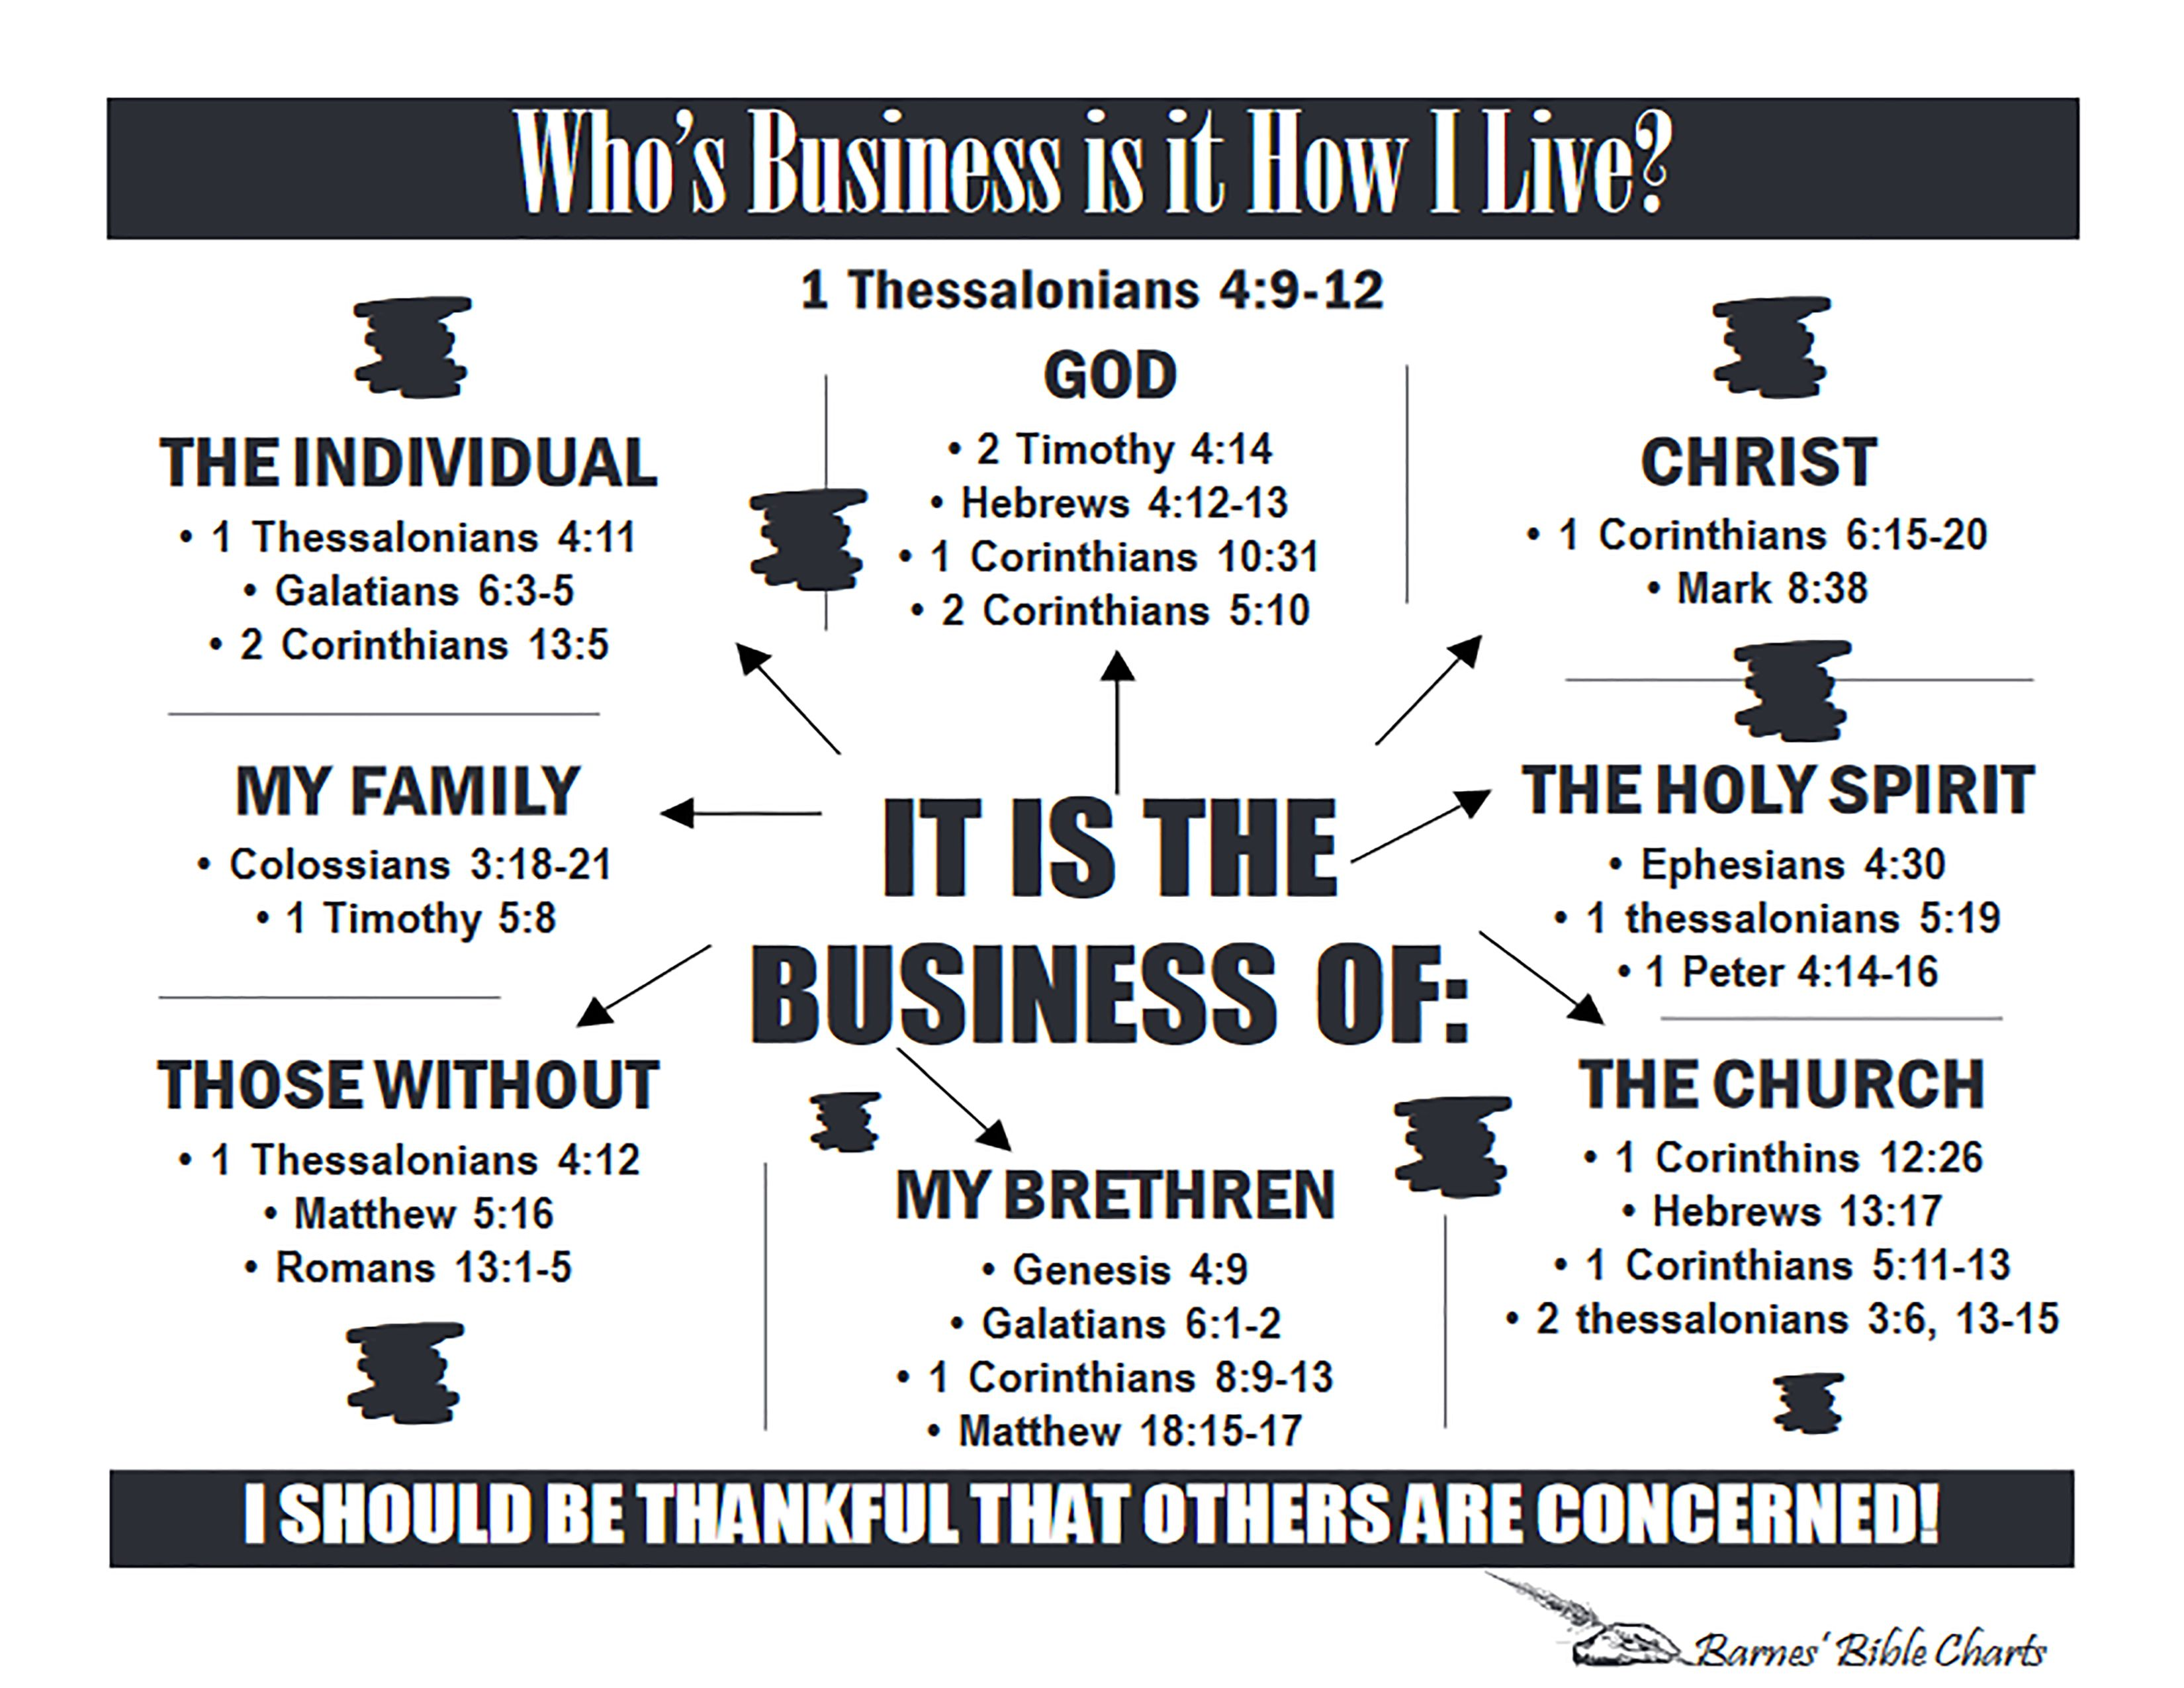 Pin by 4BibleStudy on Barnes Bible Charts: LARGE 8-1/2x11 ...